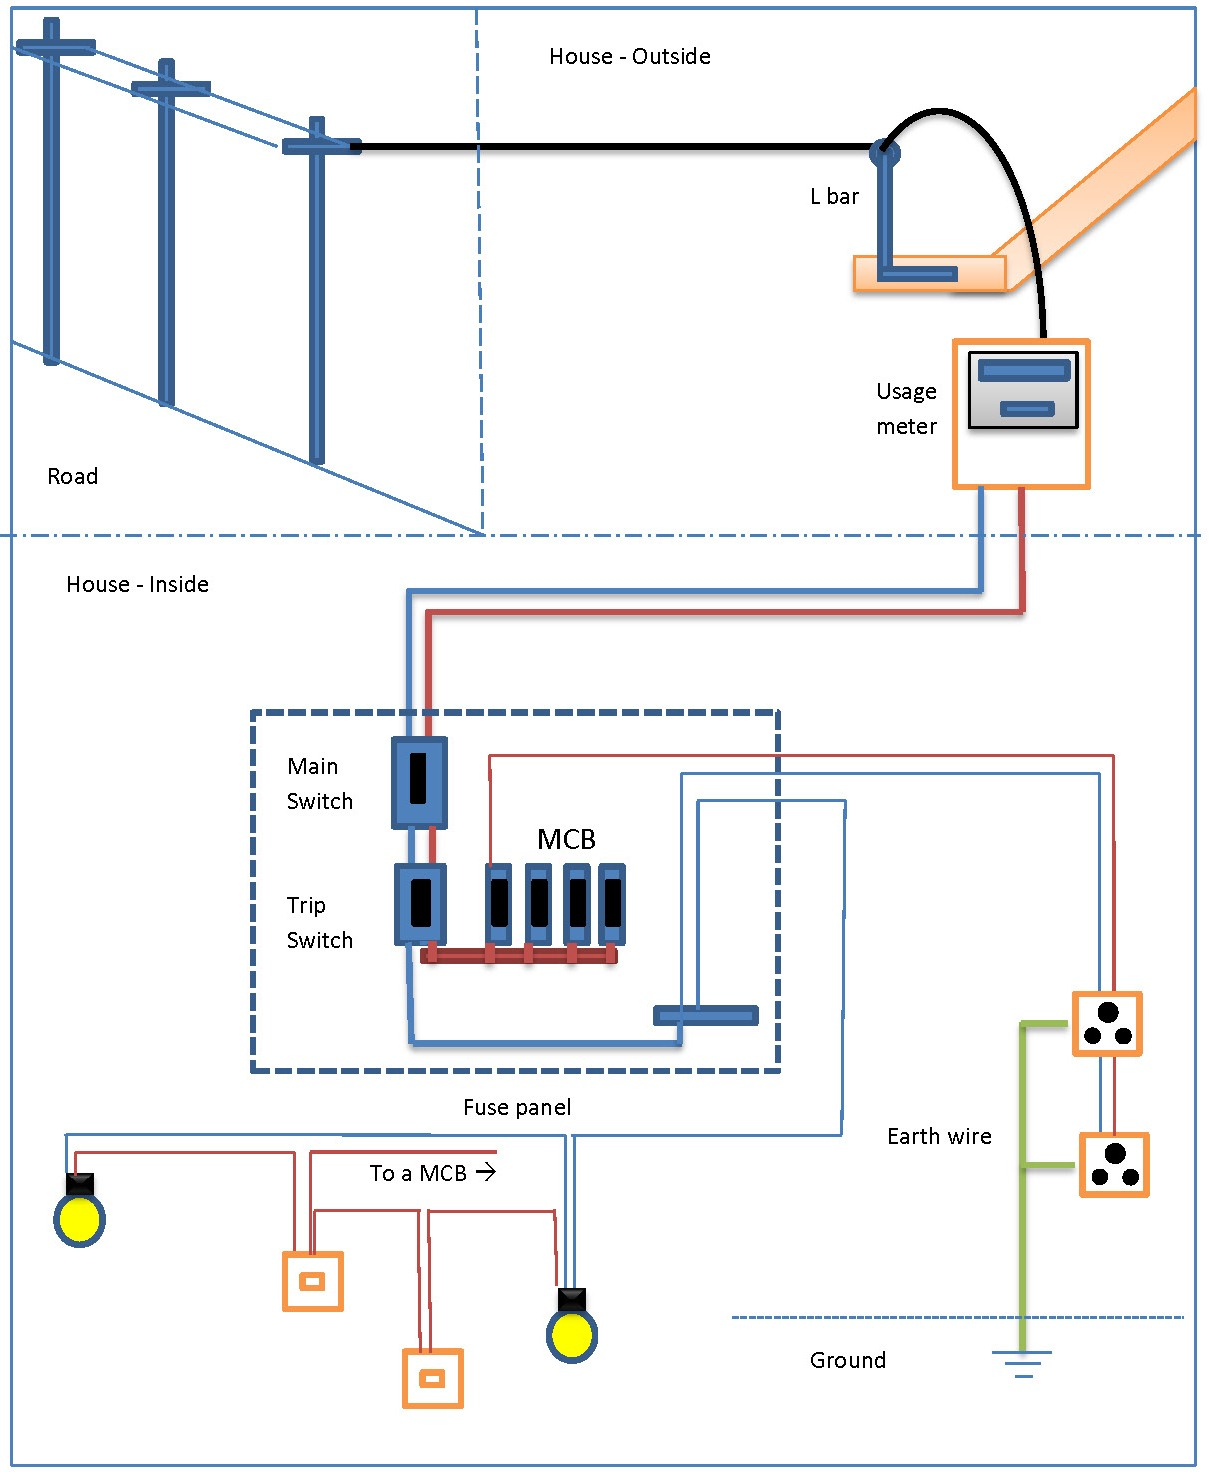 Doc3 senasum's blog house wiring diagram sri lanka house wiring diagrams at mifinder.co